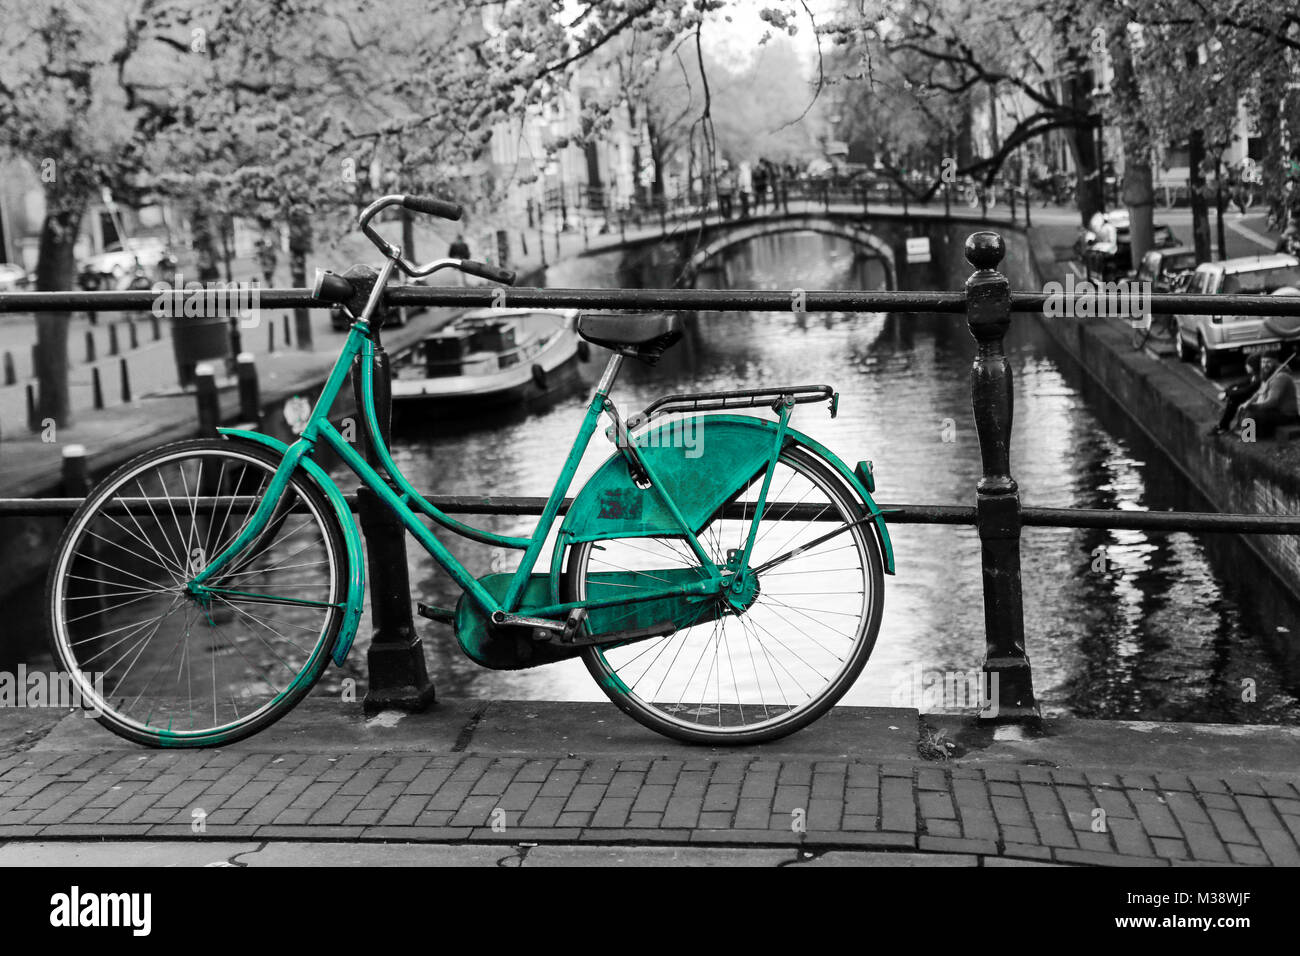 A picture of a lonely azure bike on the bridge over the channel in Amsterdam. The background is black and white. Stock Photo